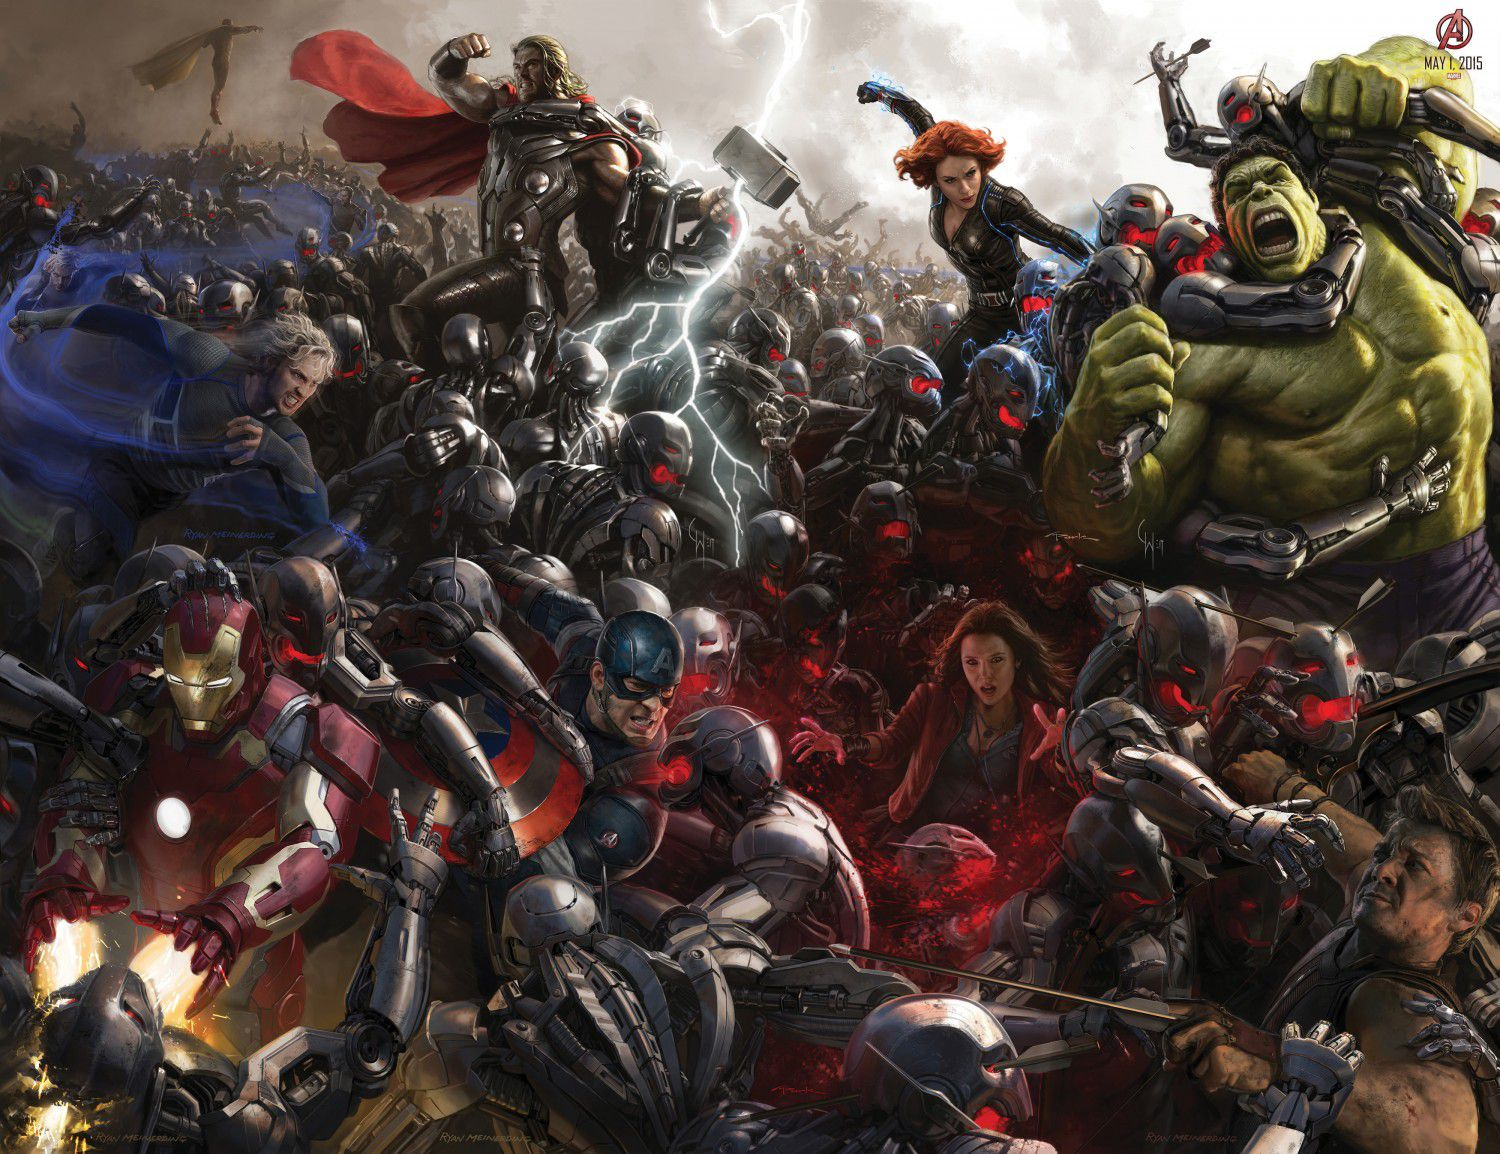 Avengers 2 - Age of Ultron - characters - all superheroes